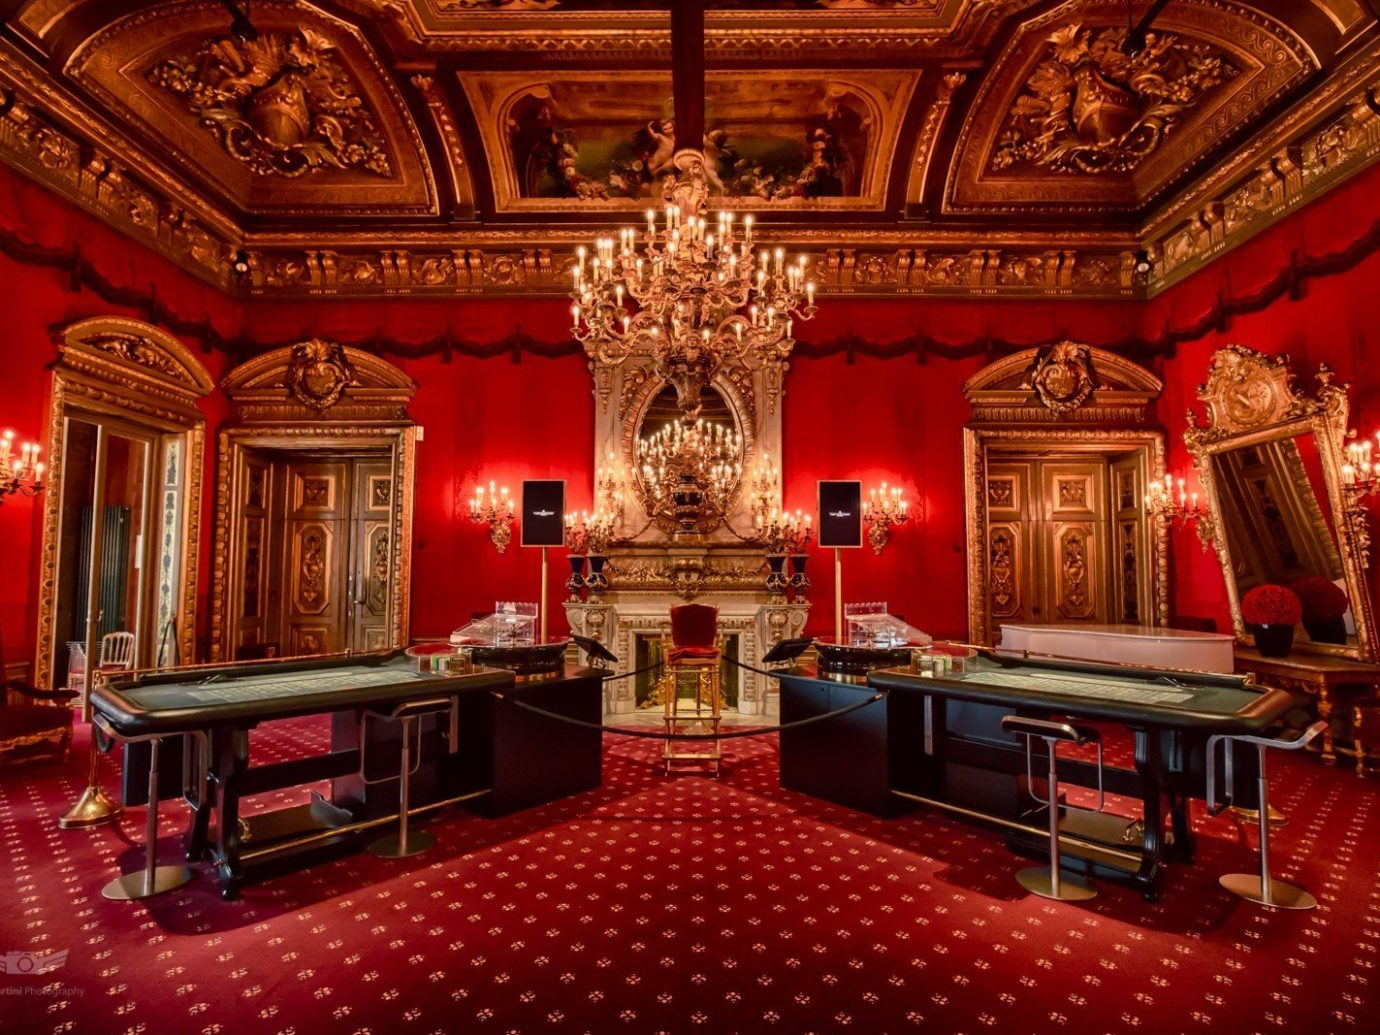 Hotels indoor room red floor building Living function hall stage ballroom theatre palace furniture